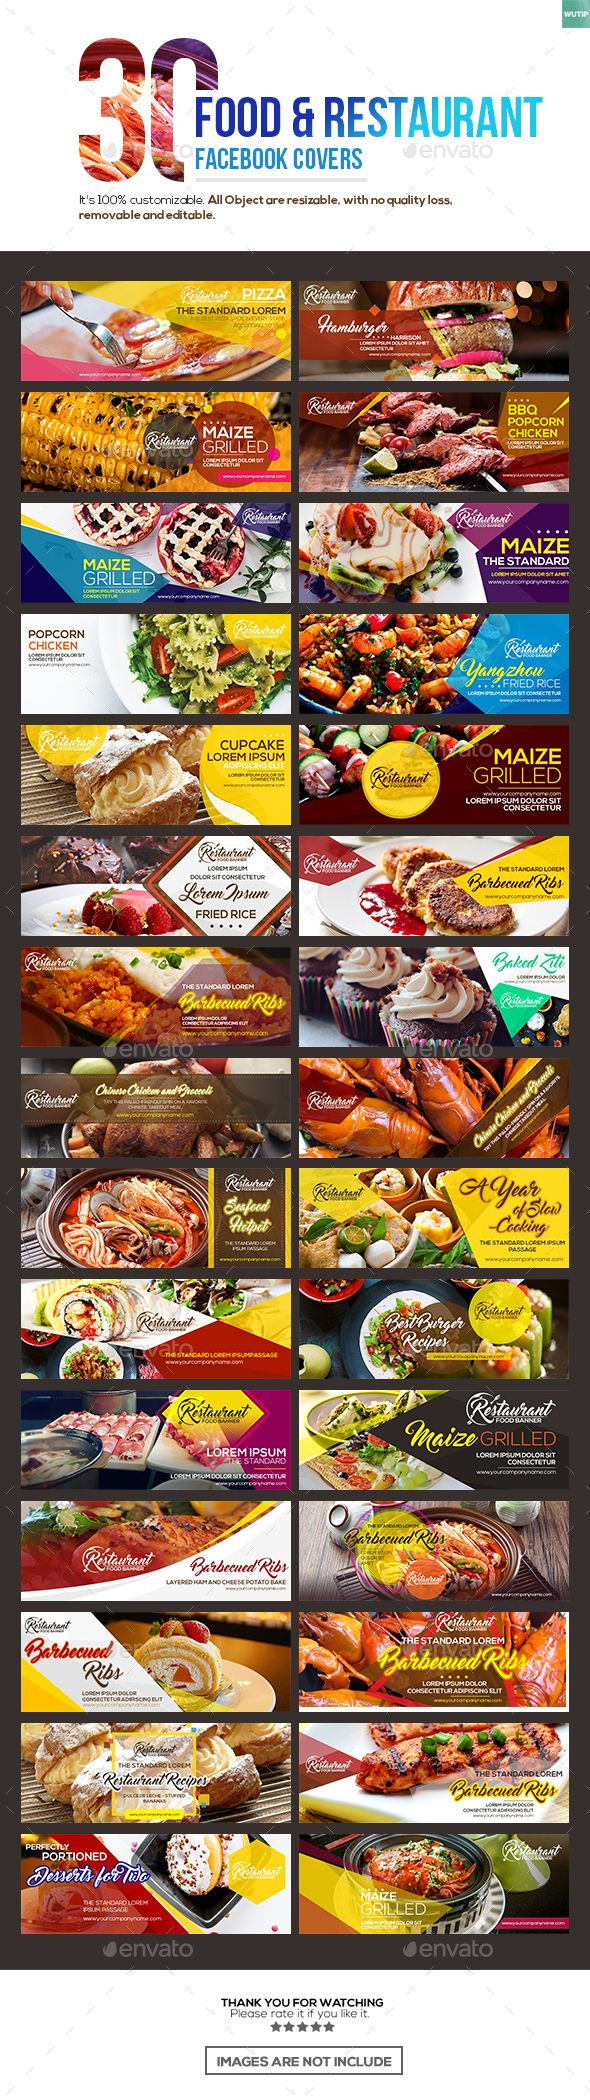 30 Food u0026 Restaurant Facebook Covers 1745